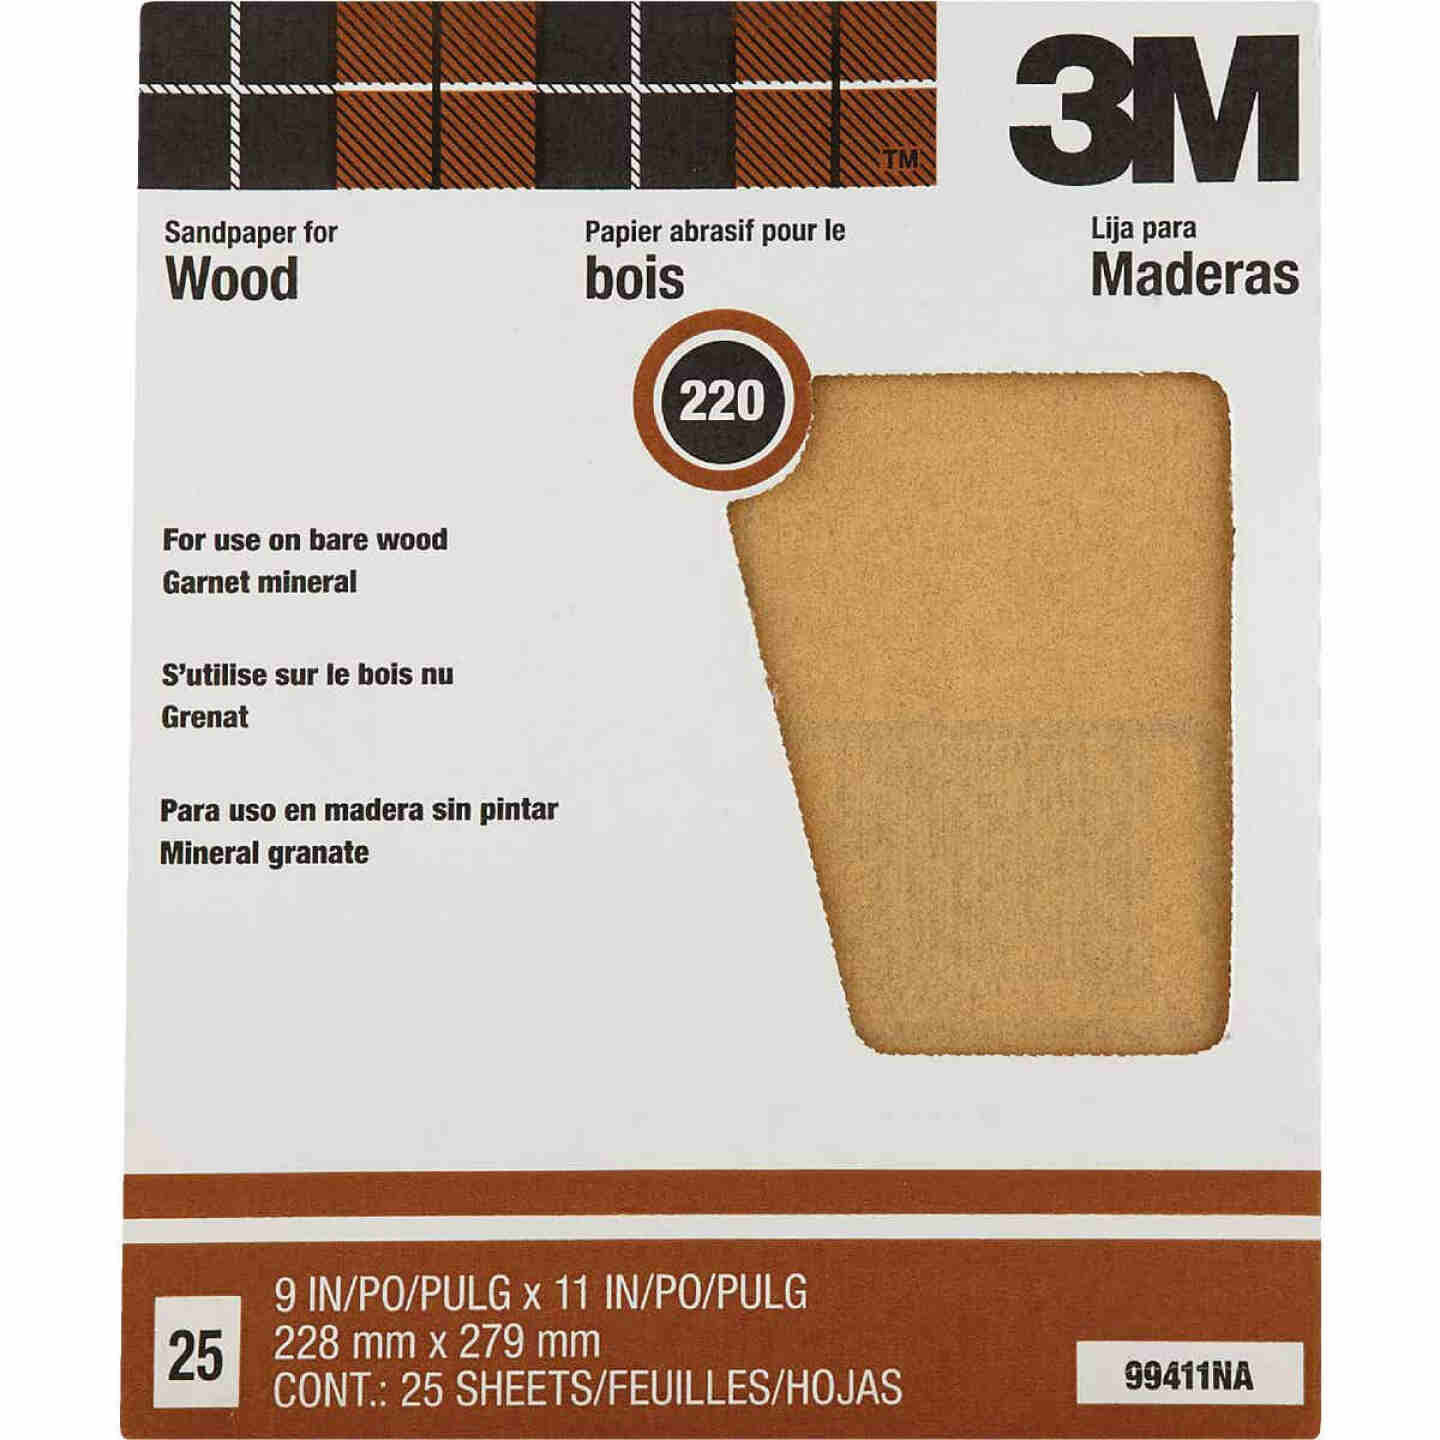 3M Pro-Pak Wood Surfaces 9 In. x 11 In. 220 Grit Very Fine Sandpaper (25-Pack) Image 1